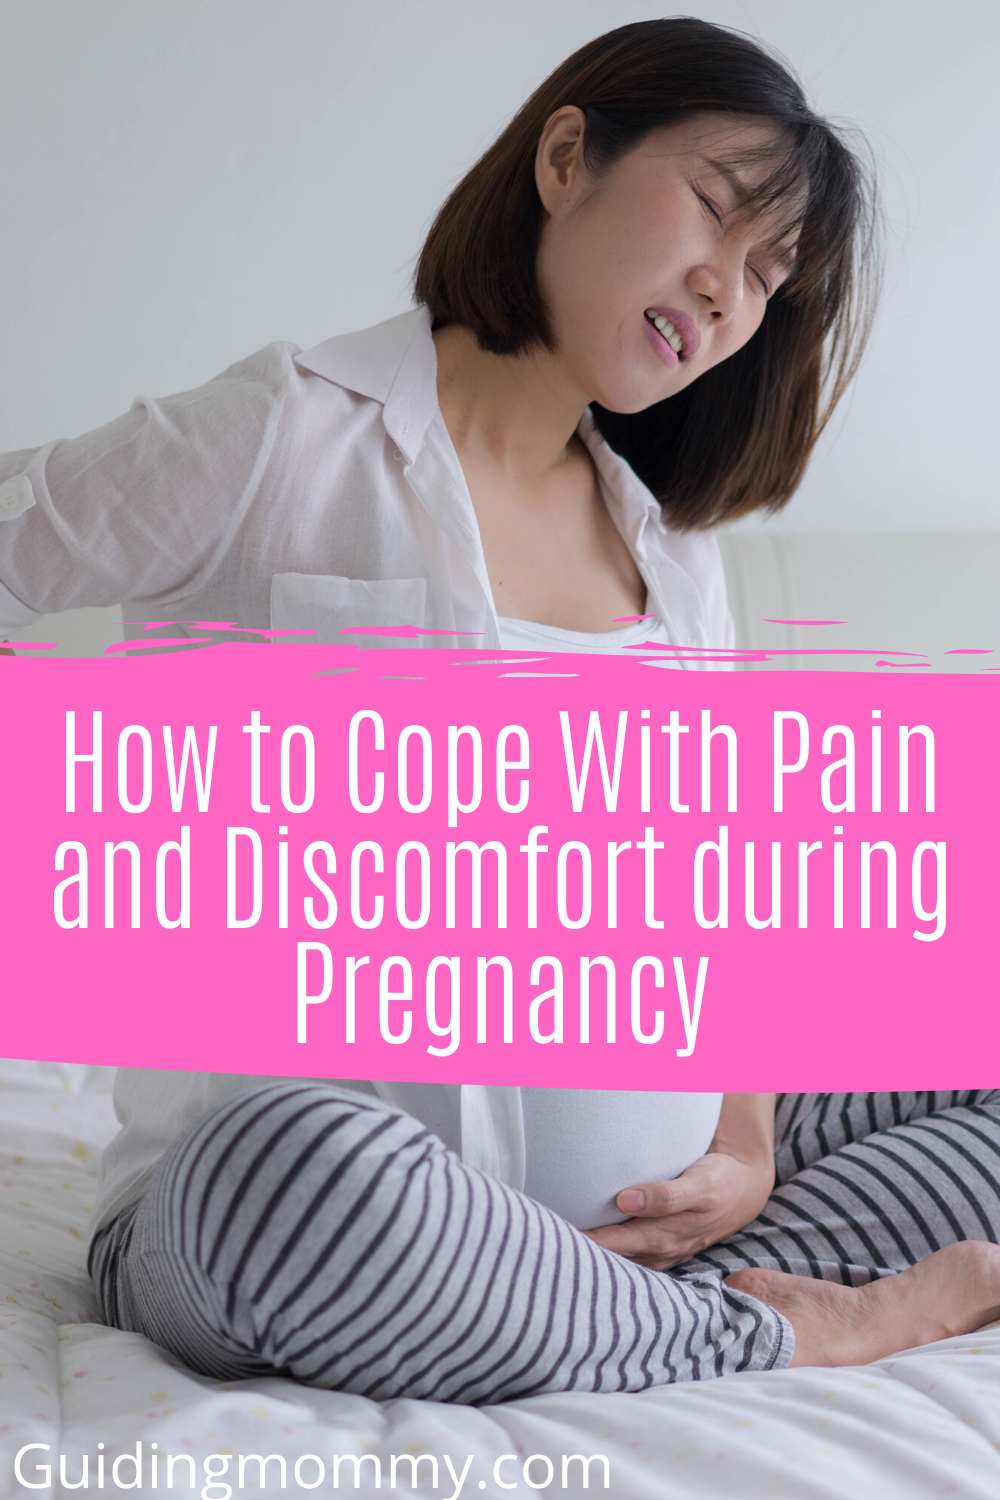 How to cope with pain and discomfort during pregnancy